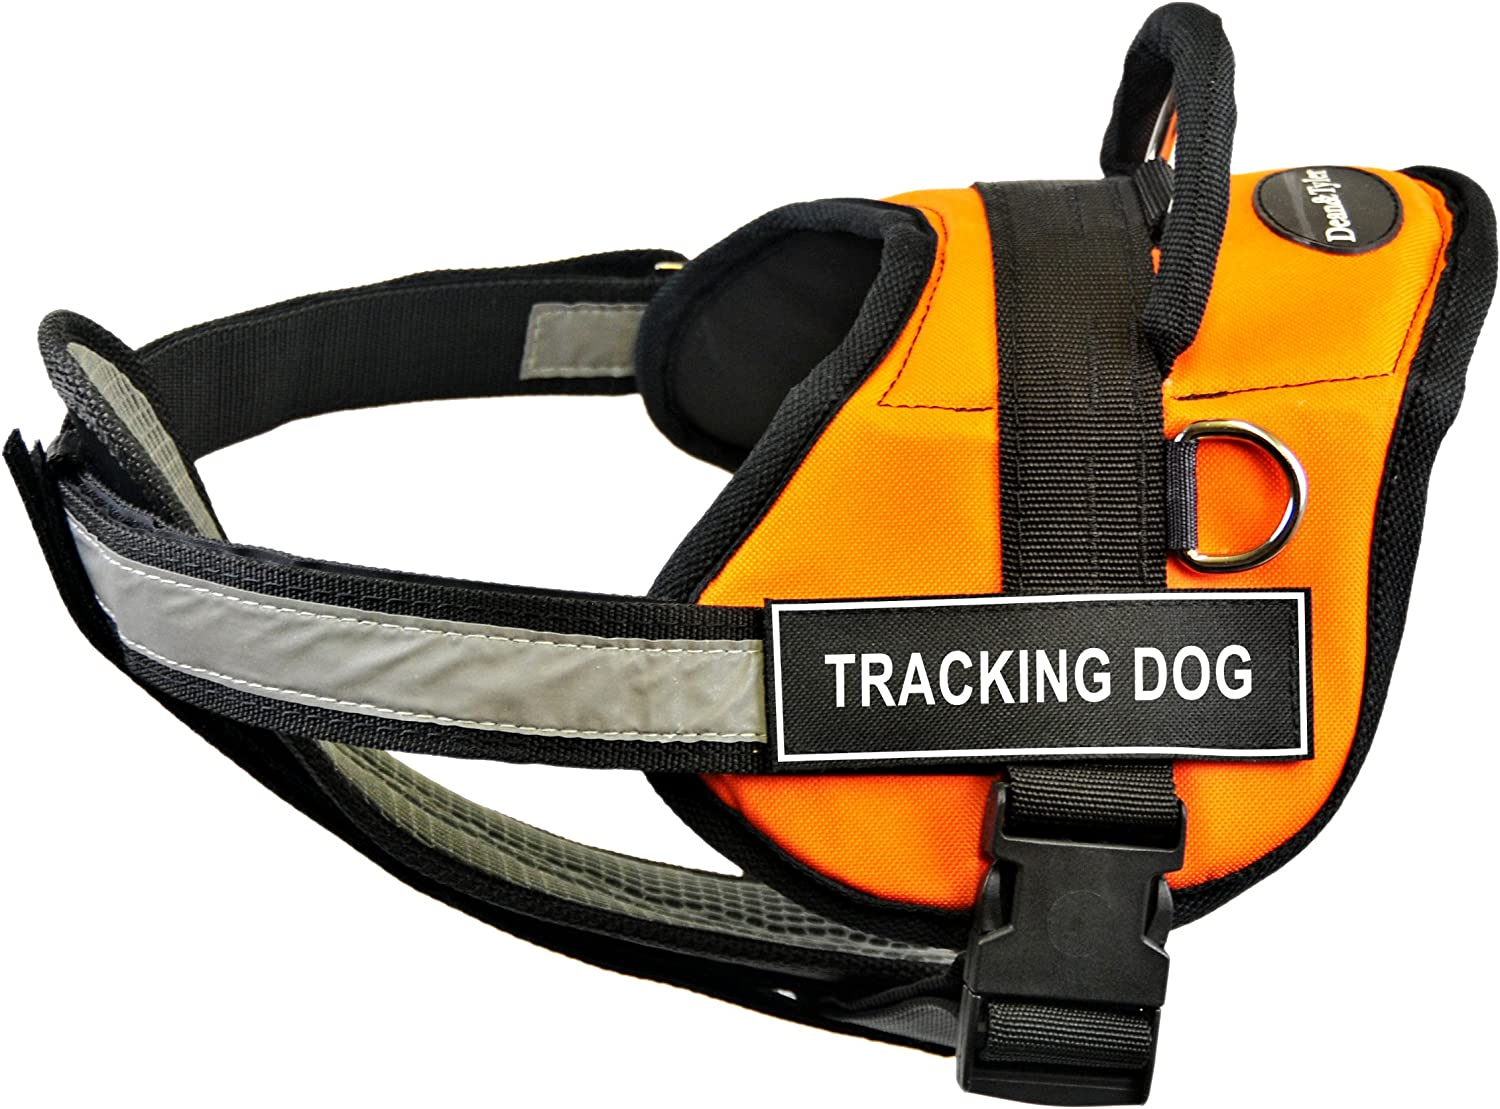 Dean & Tyler 28Inch to 38Inch Tracking Dog Harness with Padded Reflective Chest Straps, Medium, orange Black